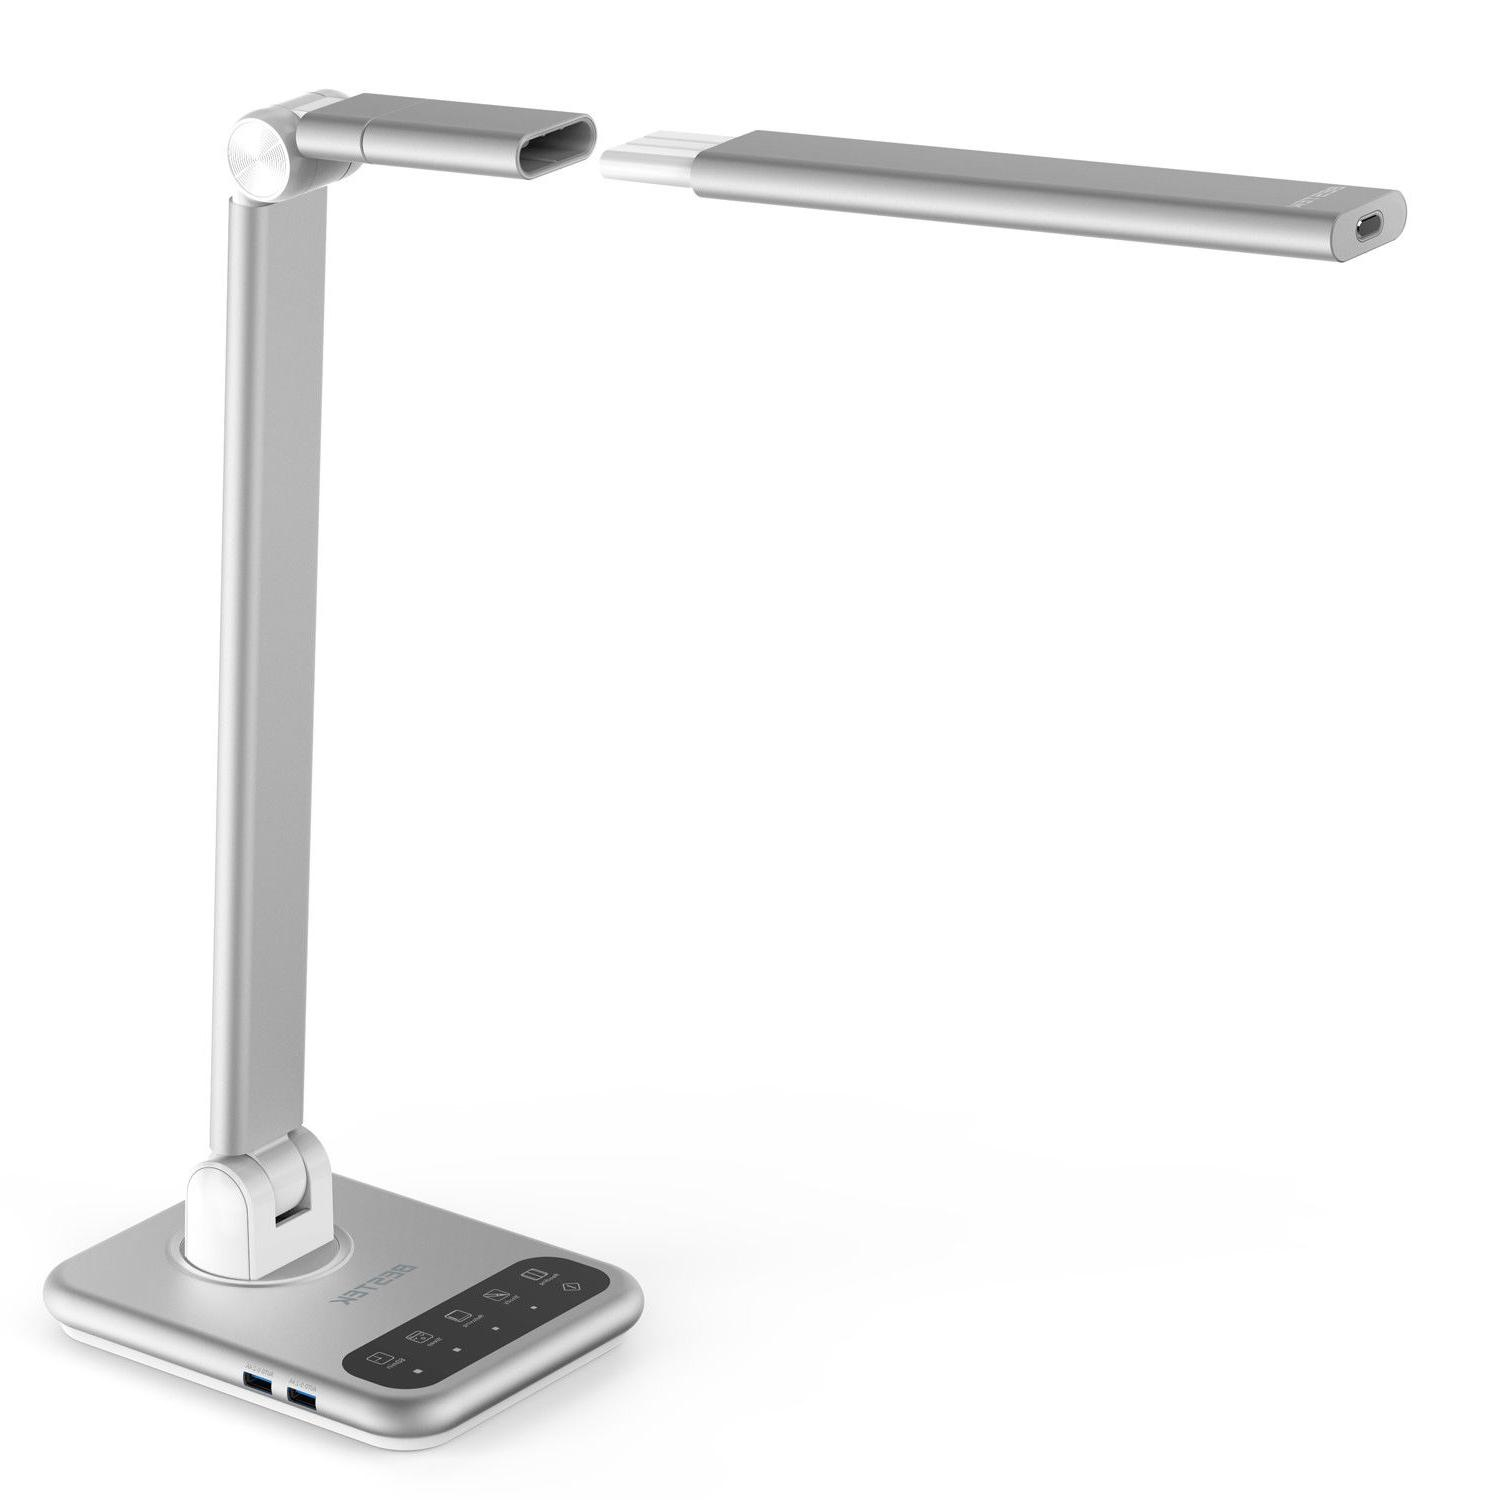 Dimmable LED Desk Lamp, BESTEK LED Table Lamp with Detachabl